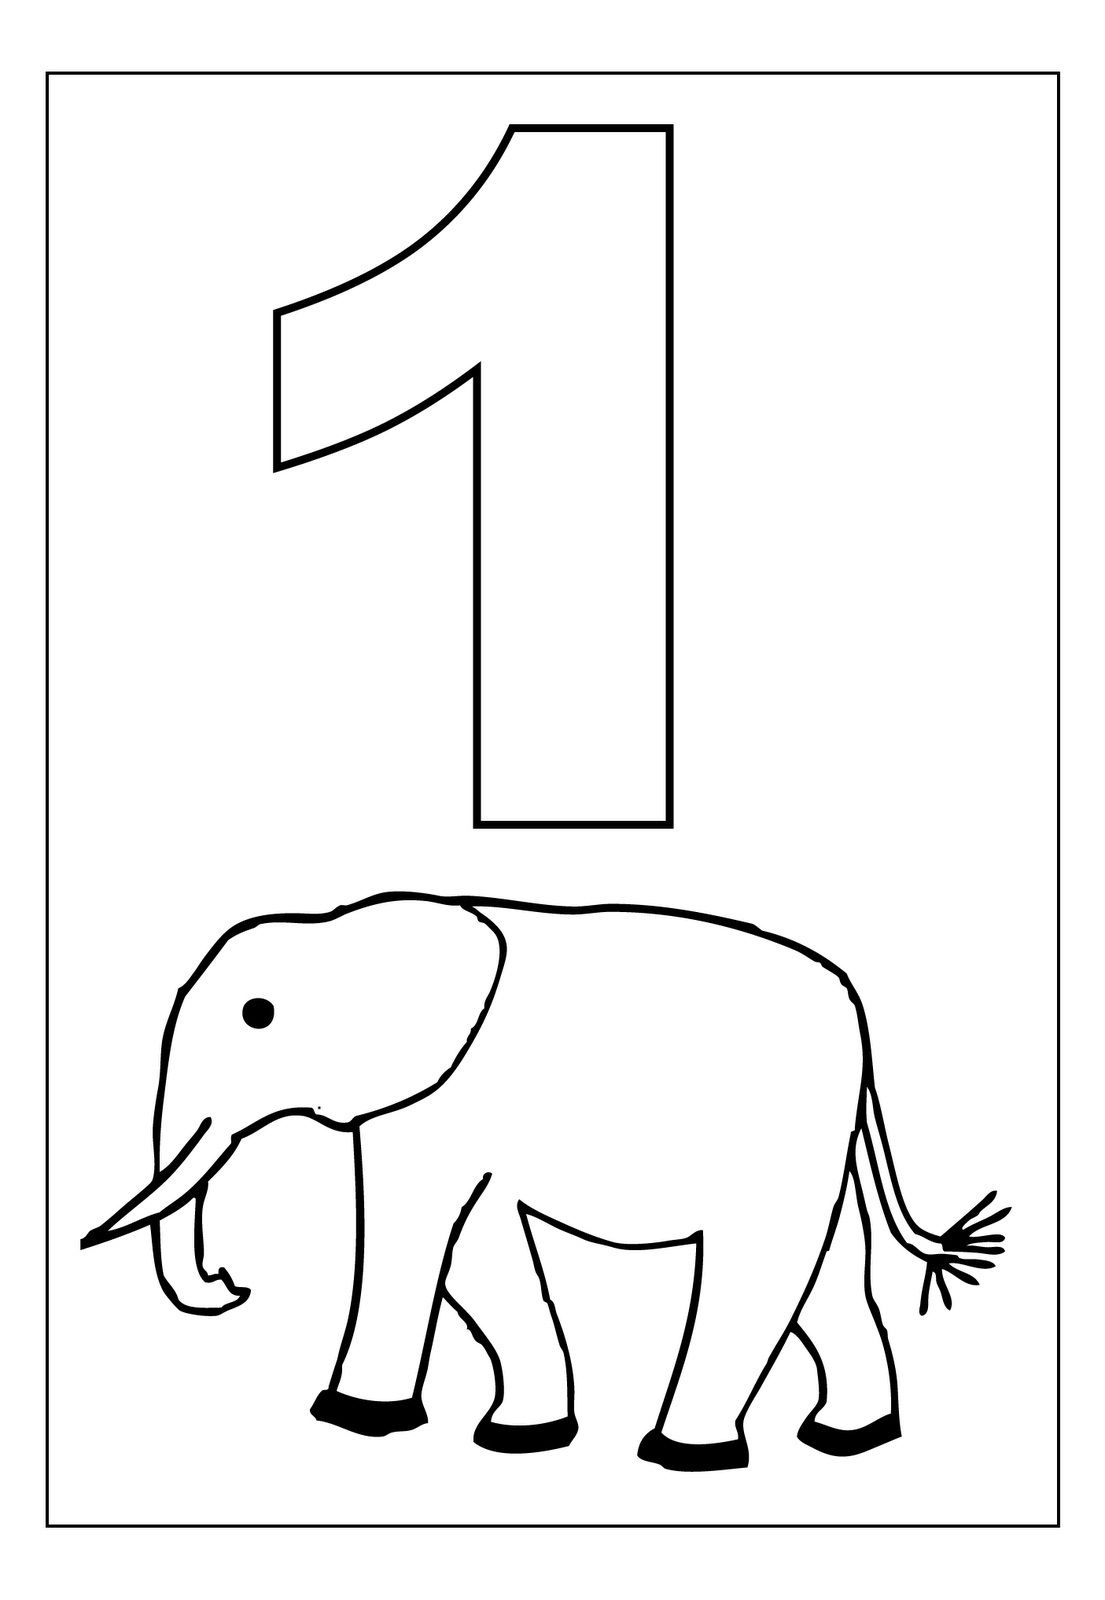 Free Printable Number Coloring Pages For Kids Sketch Coloring Page ...